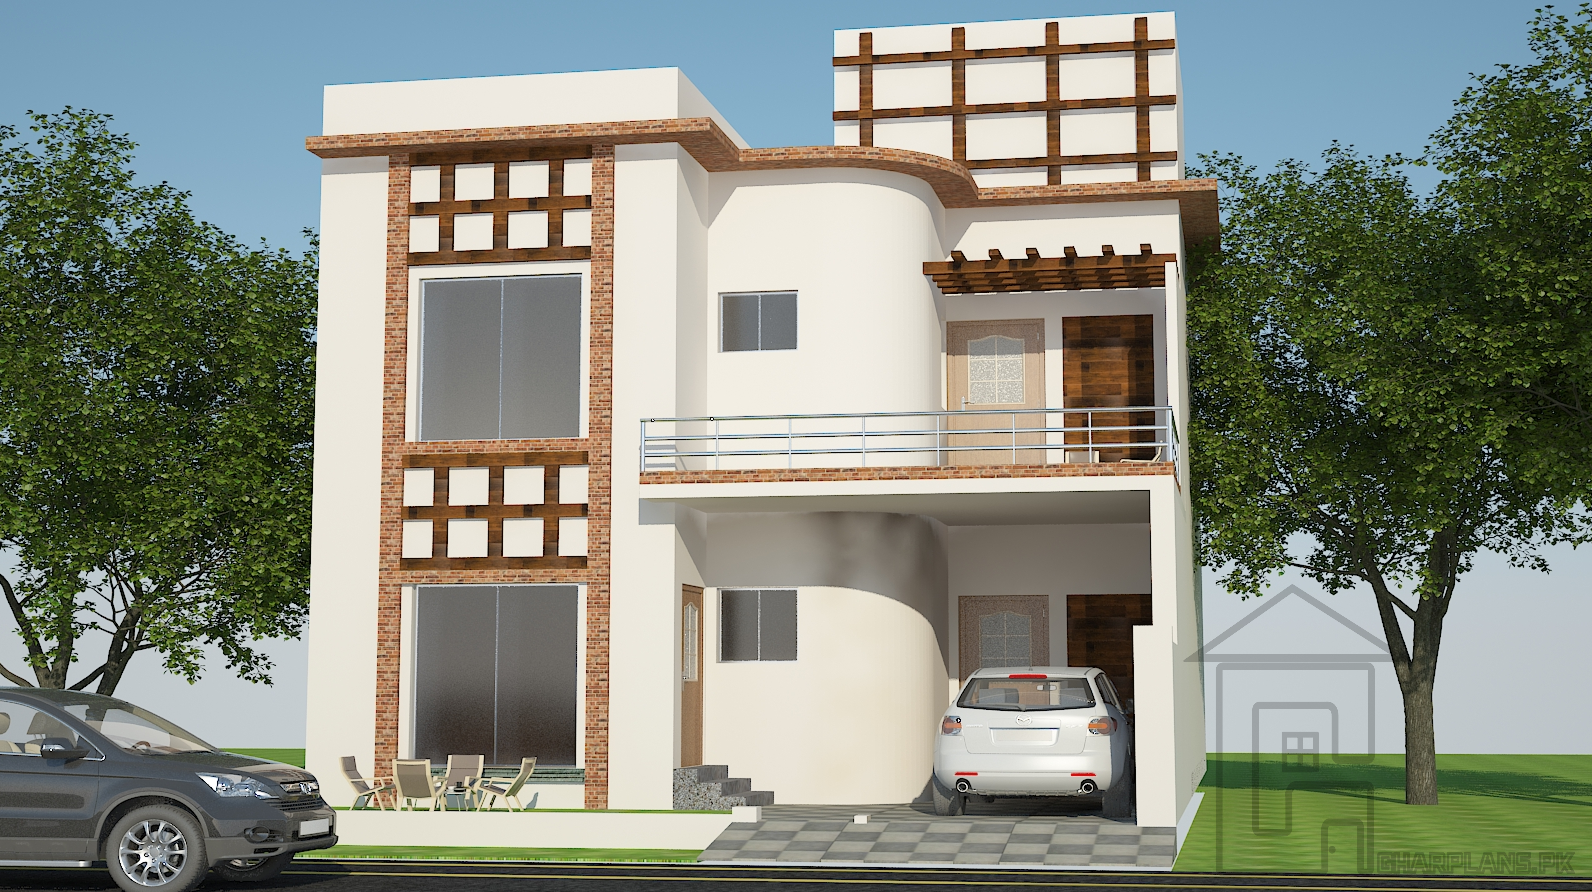 House naksha design has elevation designed in beige and off white tones to provide a visual serenity the house naksha has 5 bedrooms in total with attached